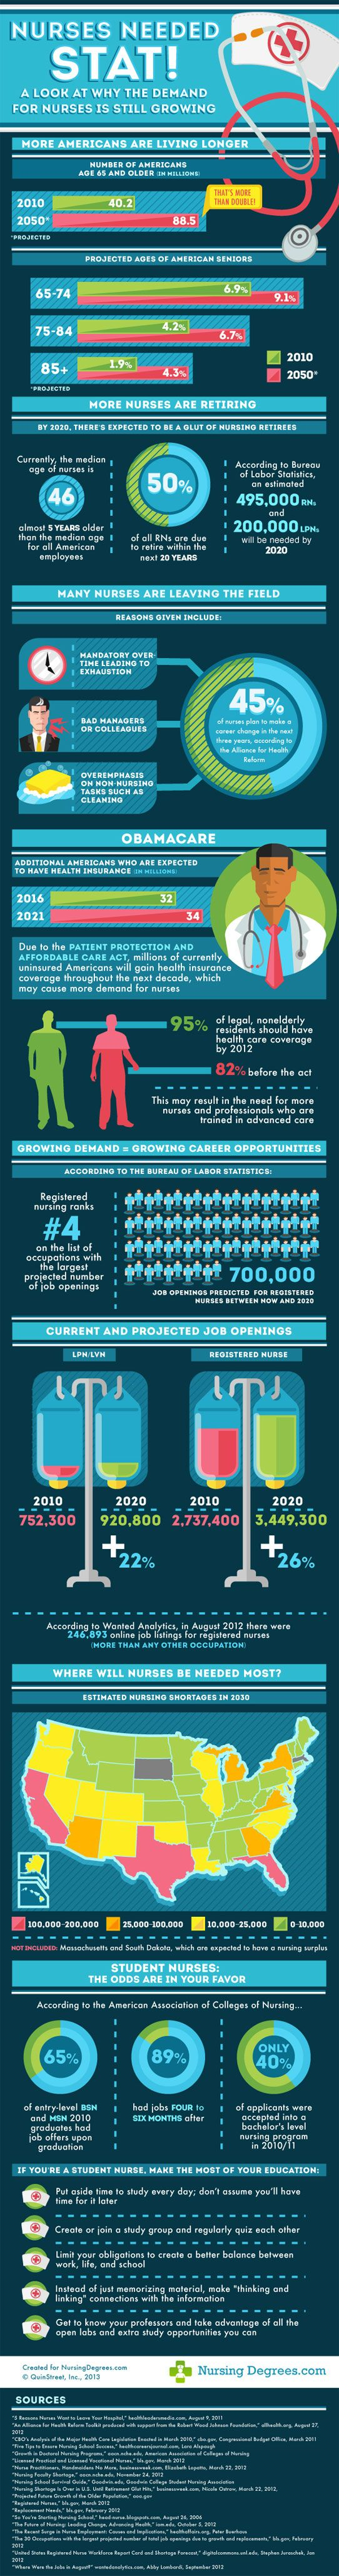 Nurses Needed Stat! A look at why the demand for Nurses is still growing [Infographic]